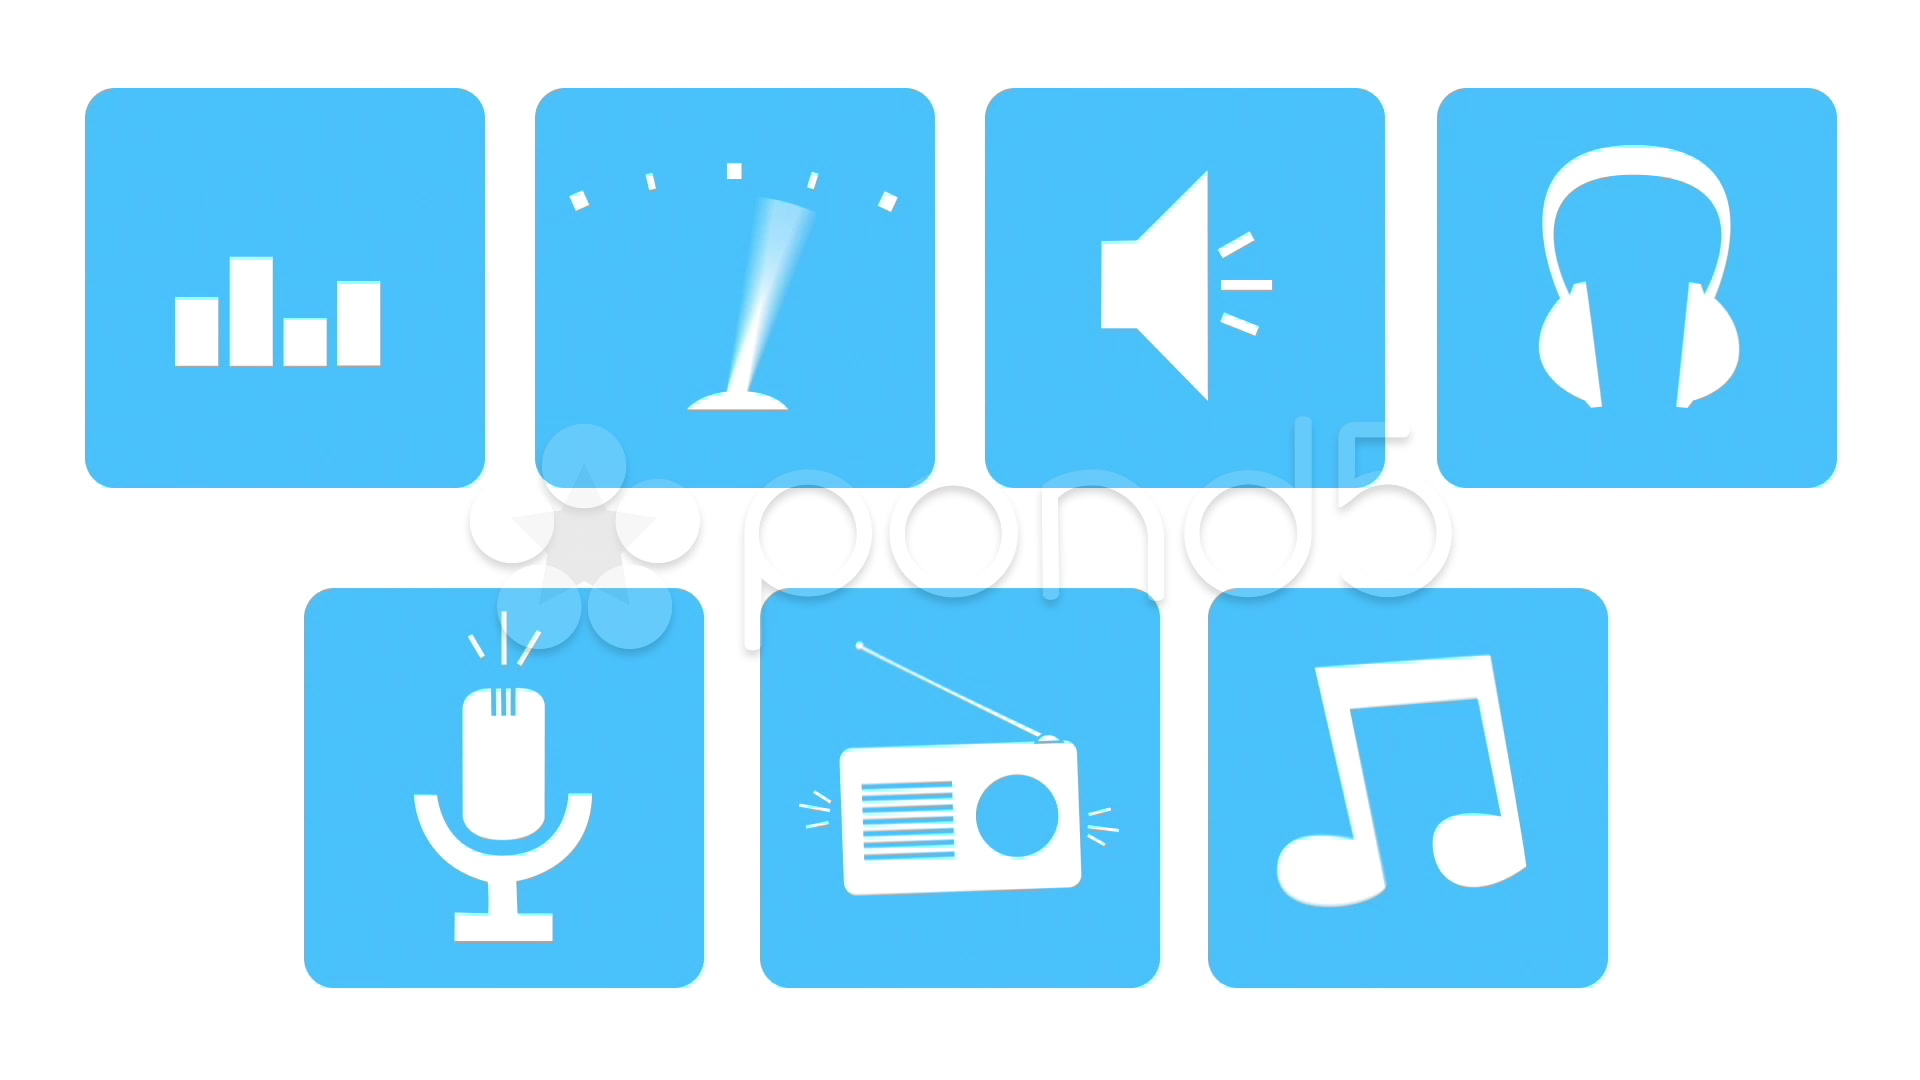 After Effects Project - Pond5 100 Animated Flat Loop Icons 33927409